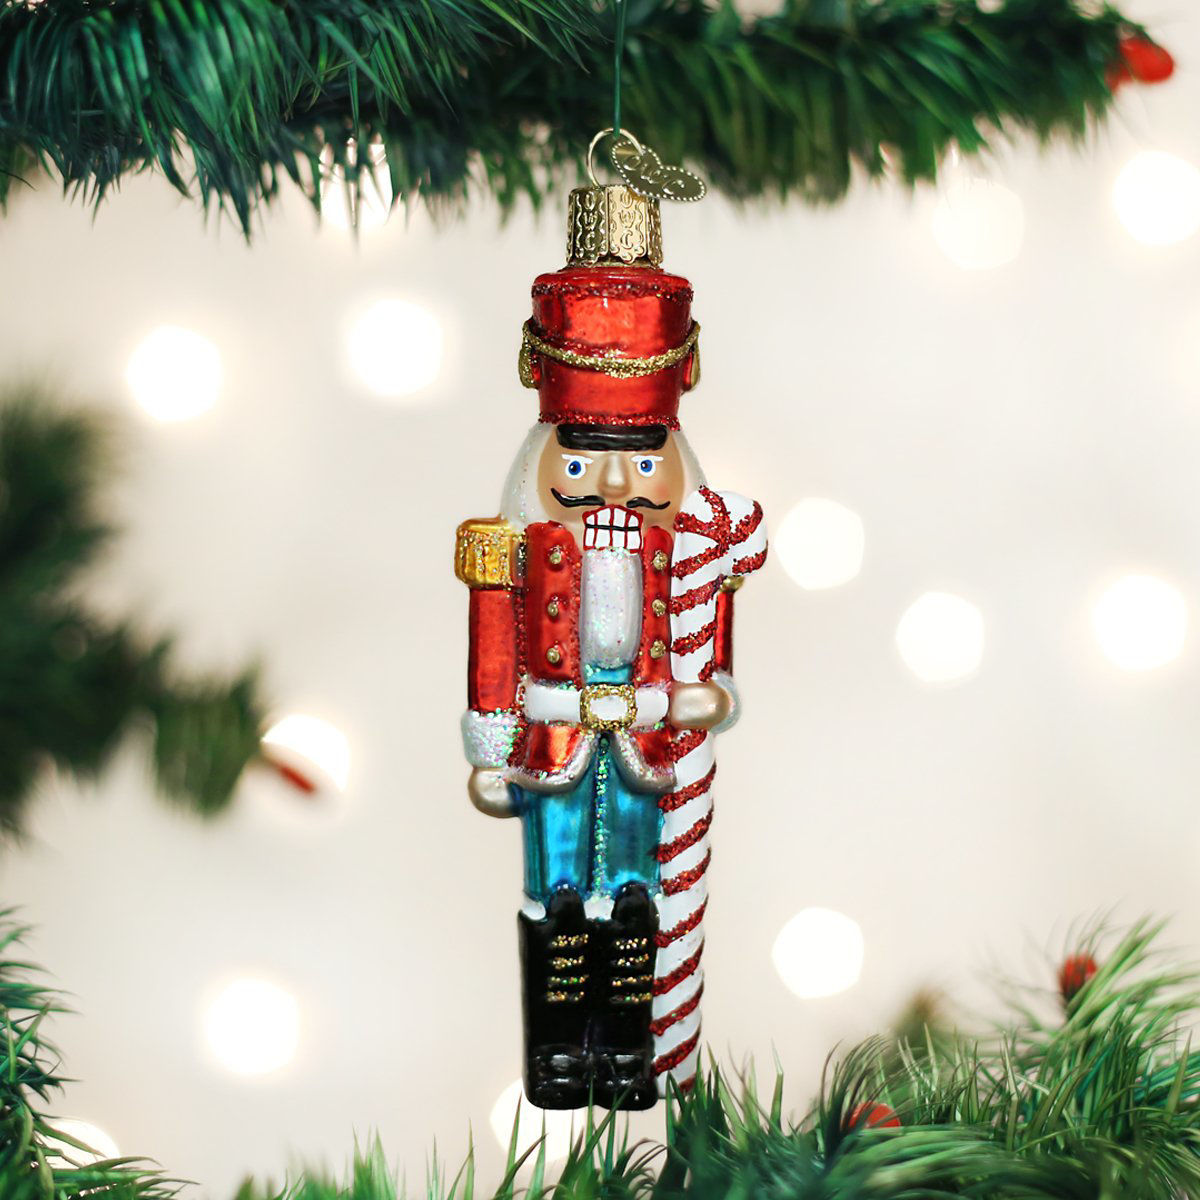 Peppermint Nutcracker Ornament by Old World Christmas